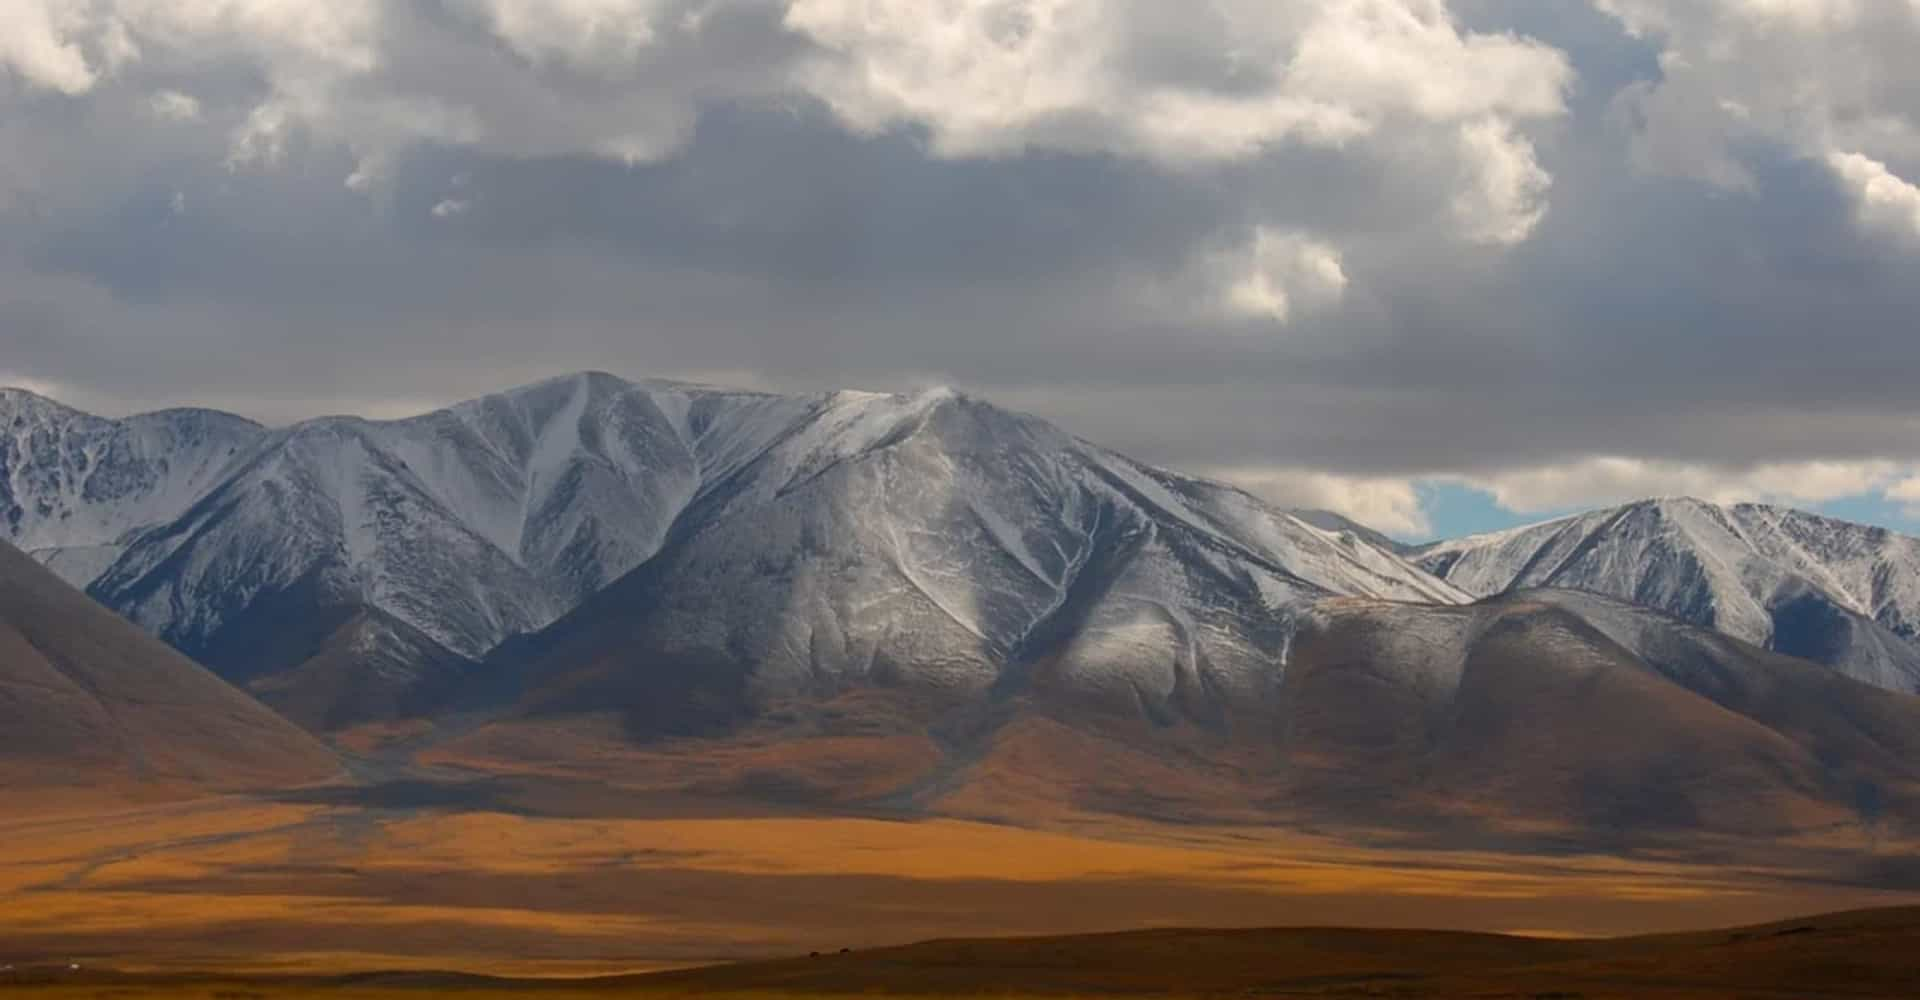 Explore Mongolia, the land of the nomads